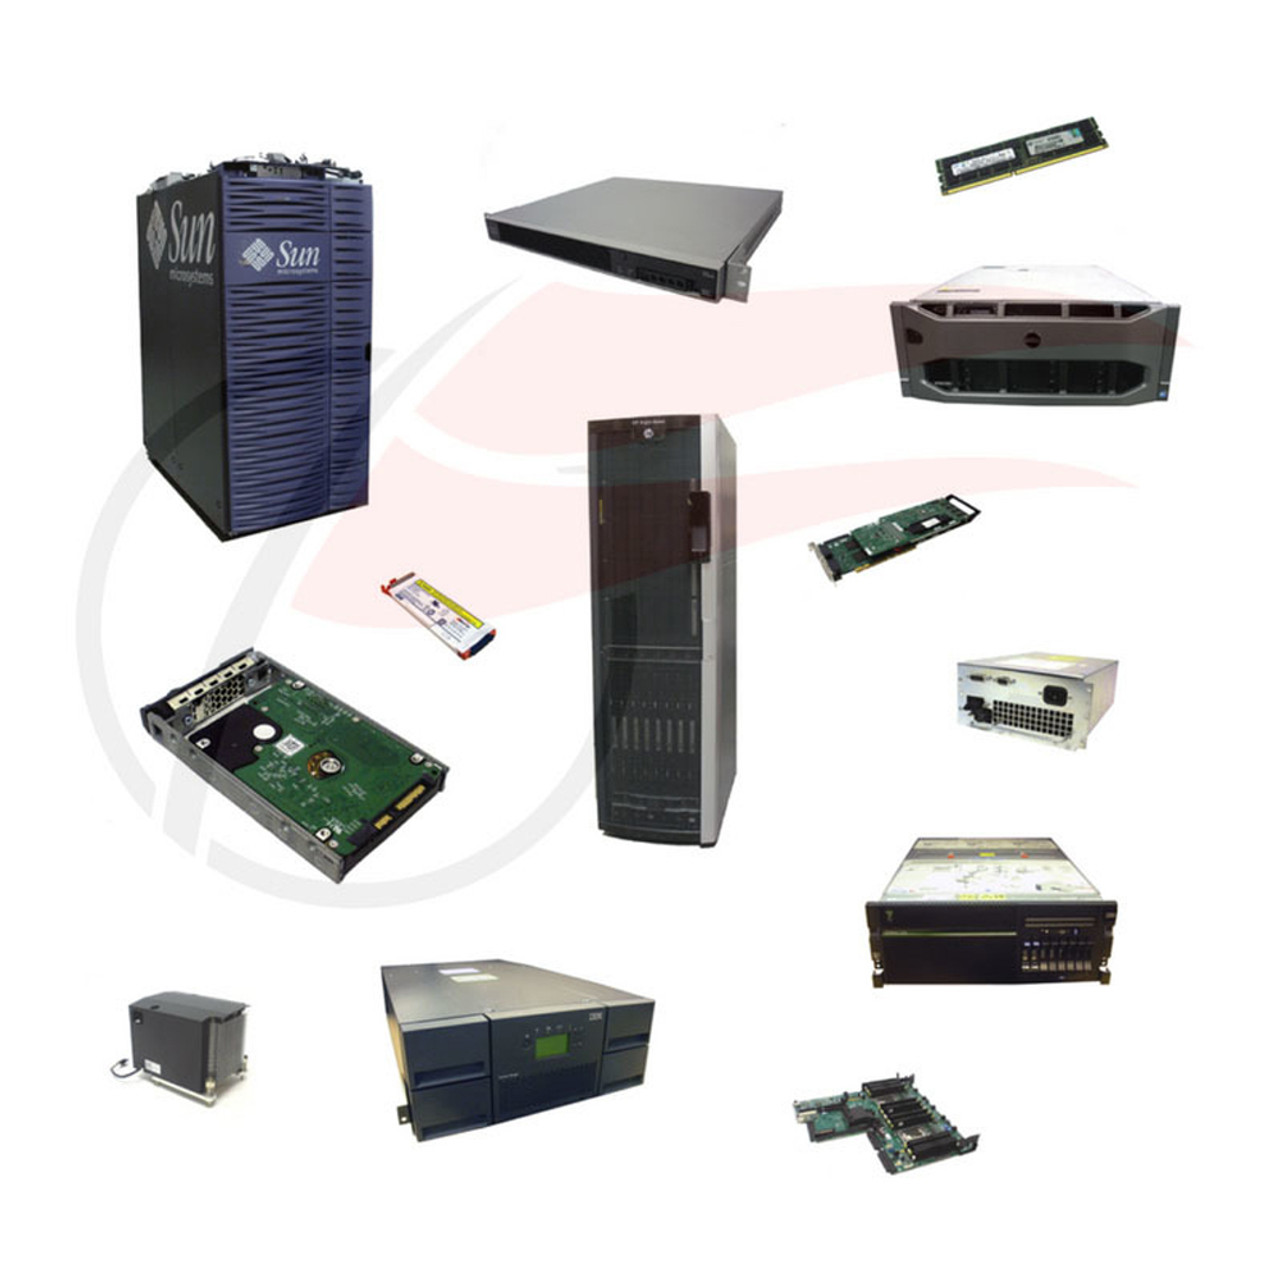 IBM Tape Drive Replacement Parts